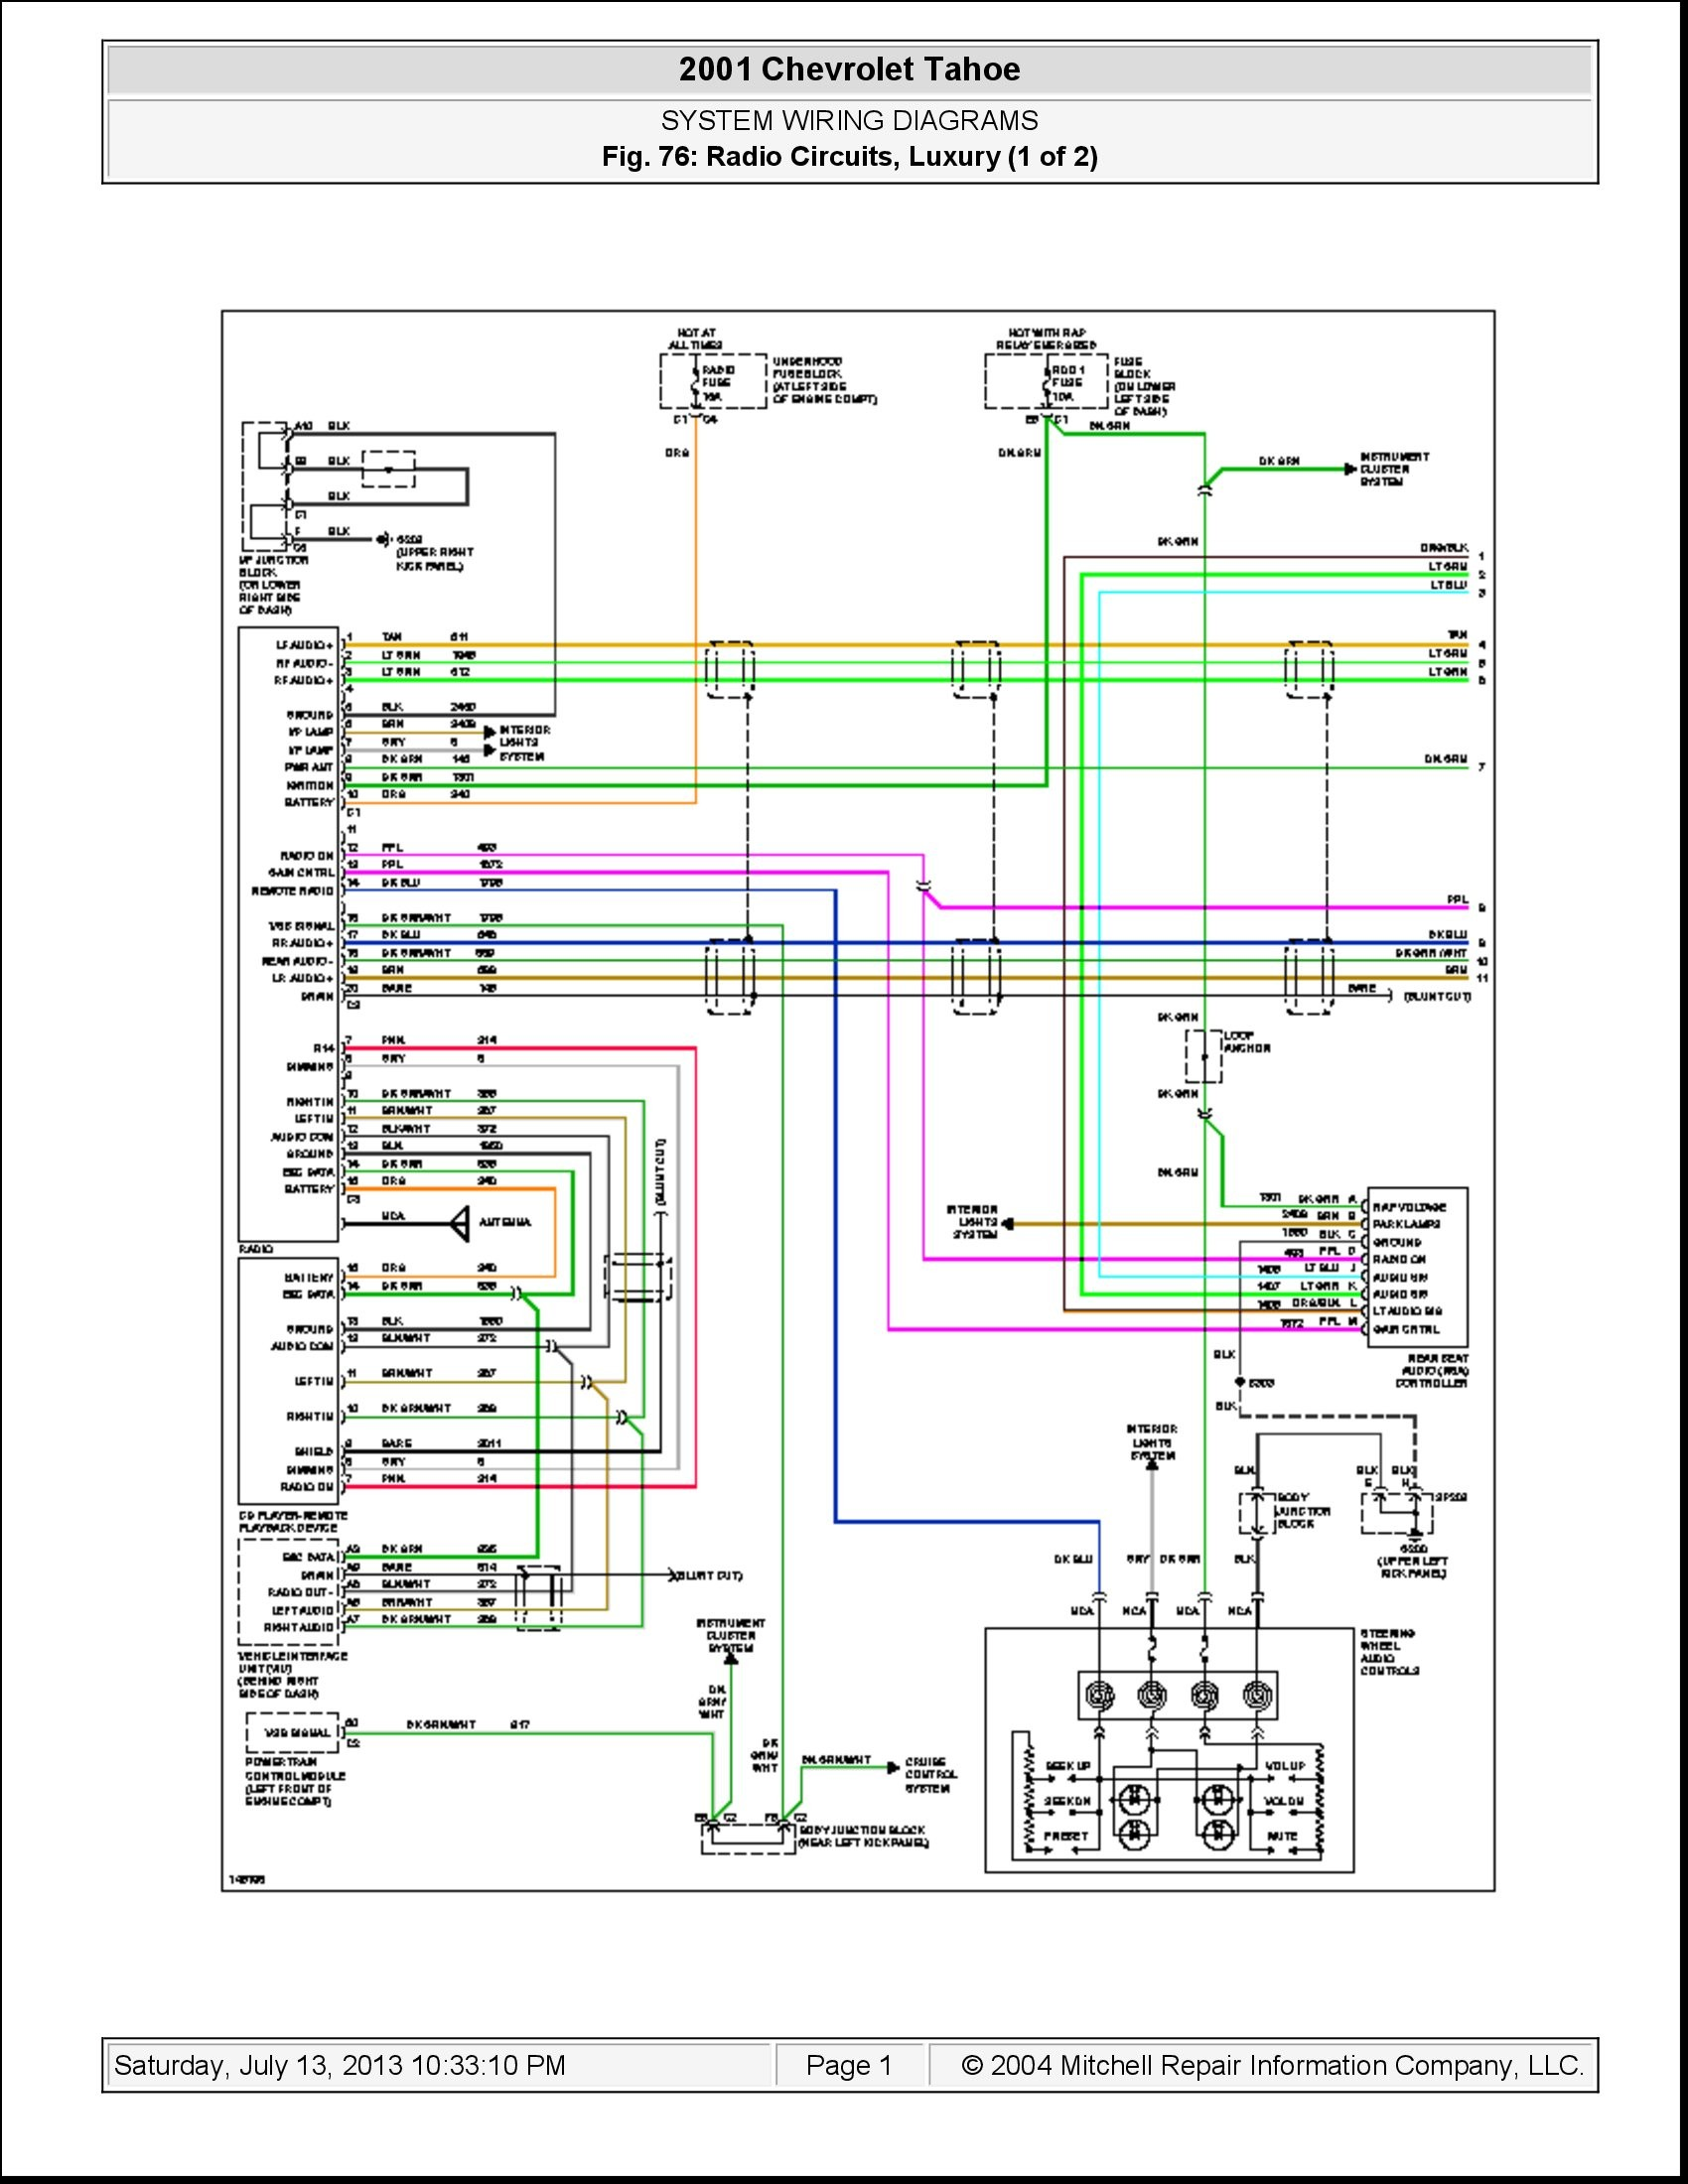 2013 Chevy Truck Wiring Diagram - Wiring Diagram Direct mile-produce -  mile-produce.siciliabeb.it | 2013 2500 Chevrolet Wiring |  | mile-produce.siciliabeb.it